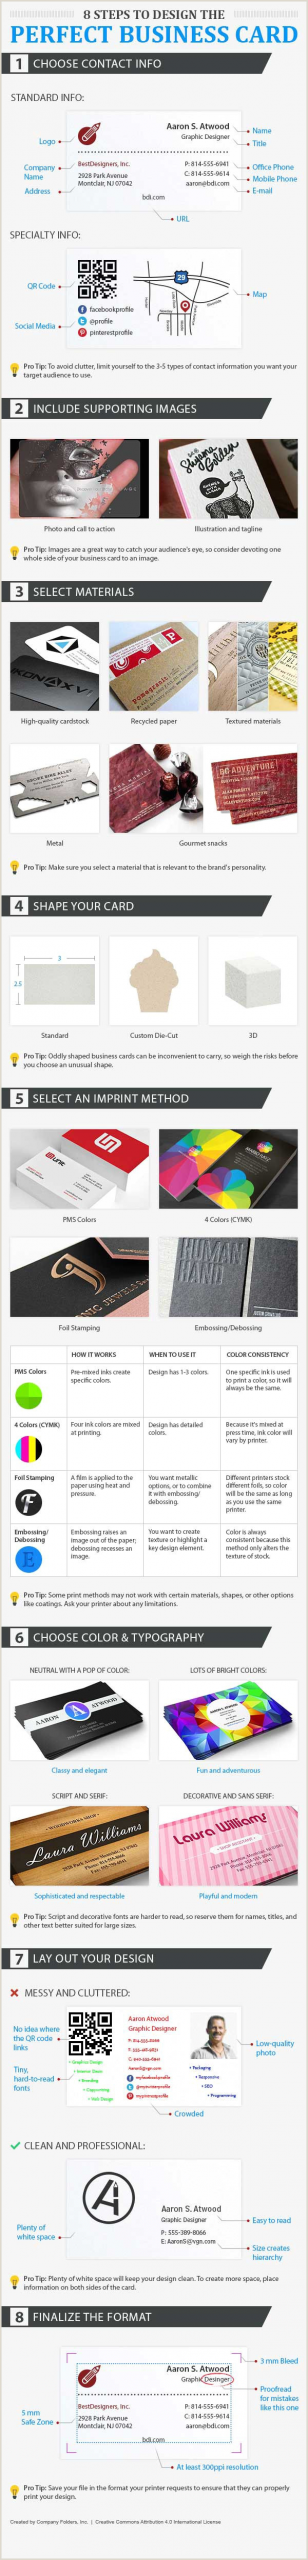 Business Card Advice 5 Top Tips For Creating Business Card Designs